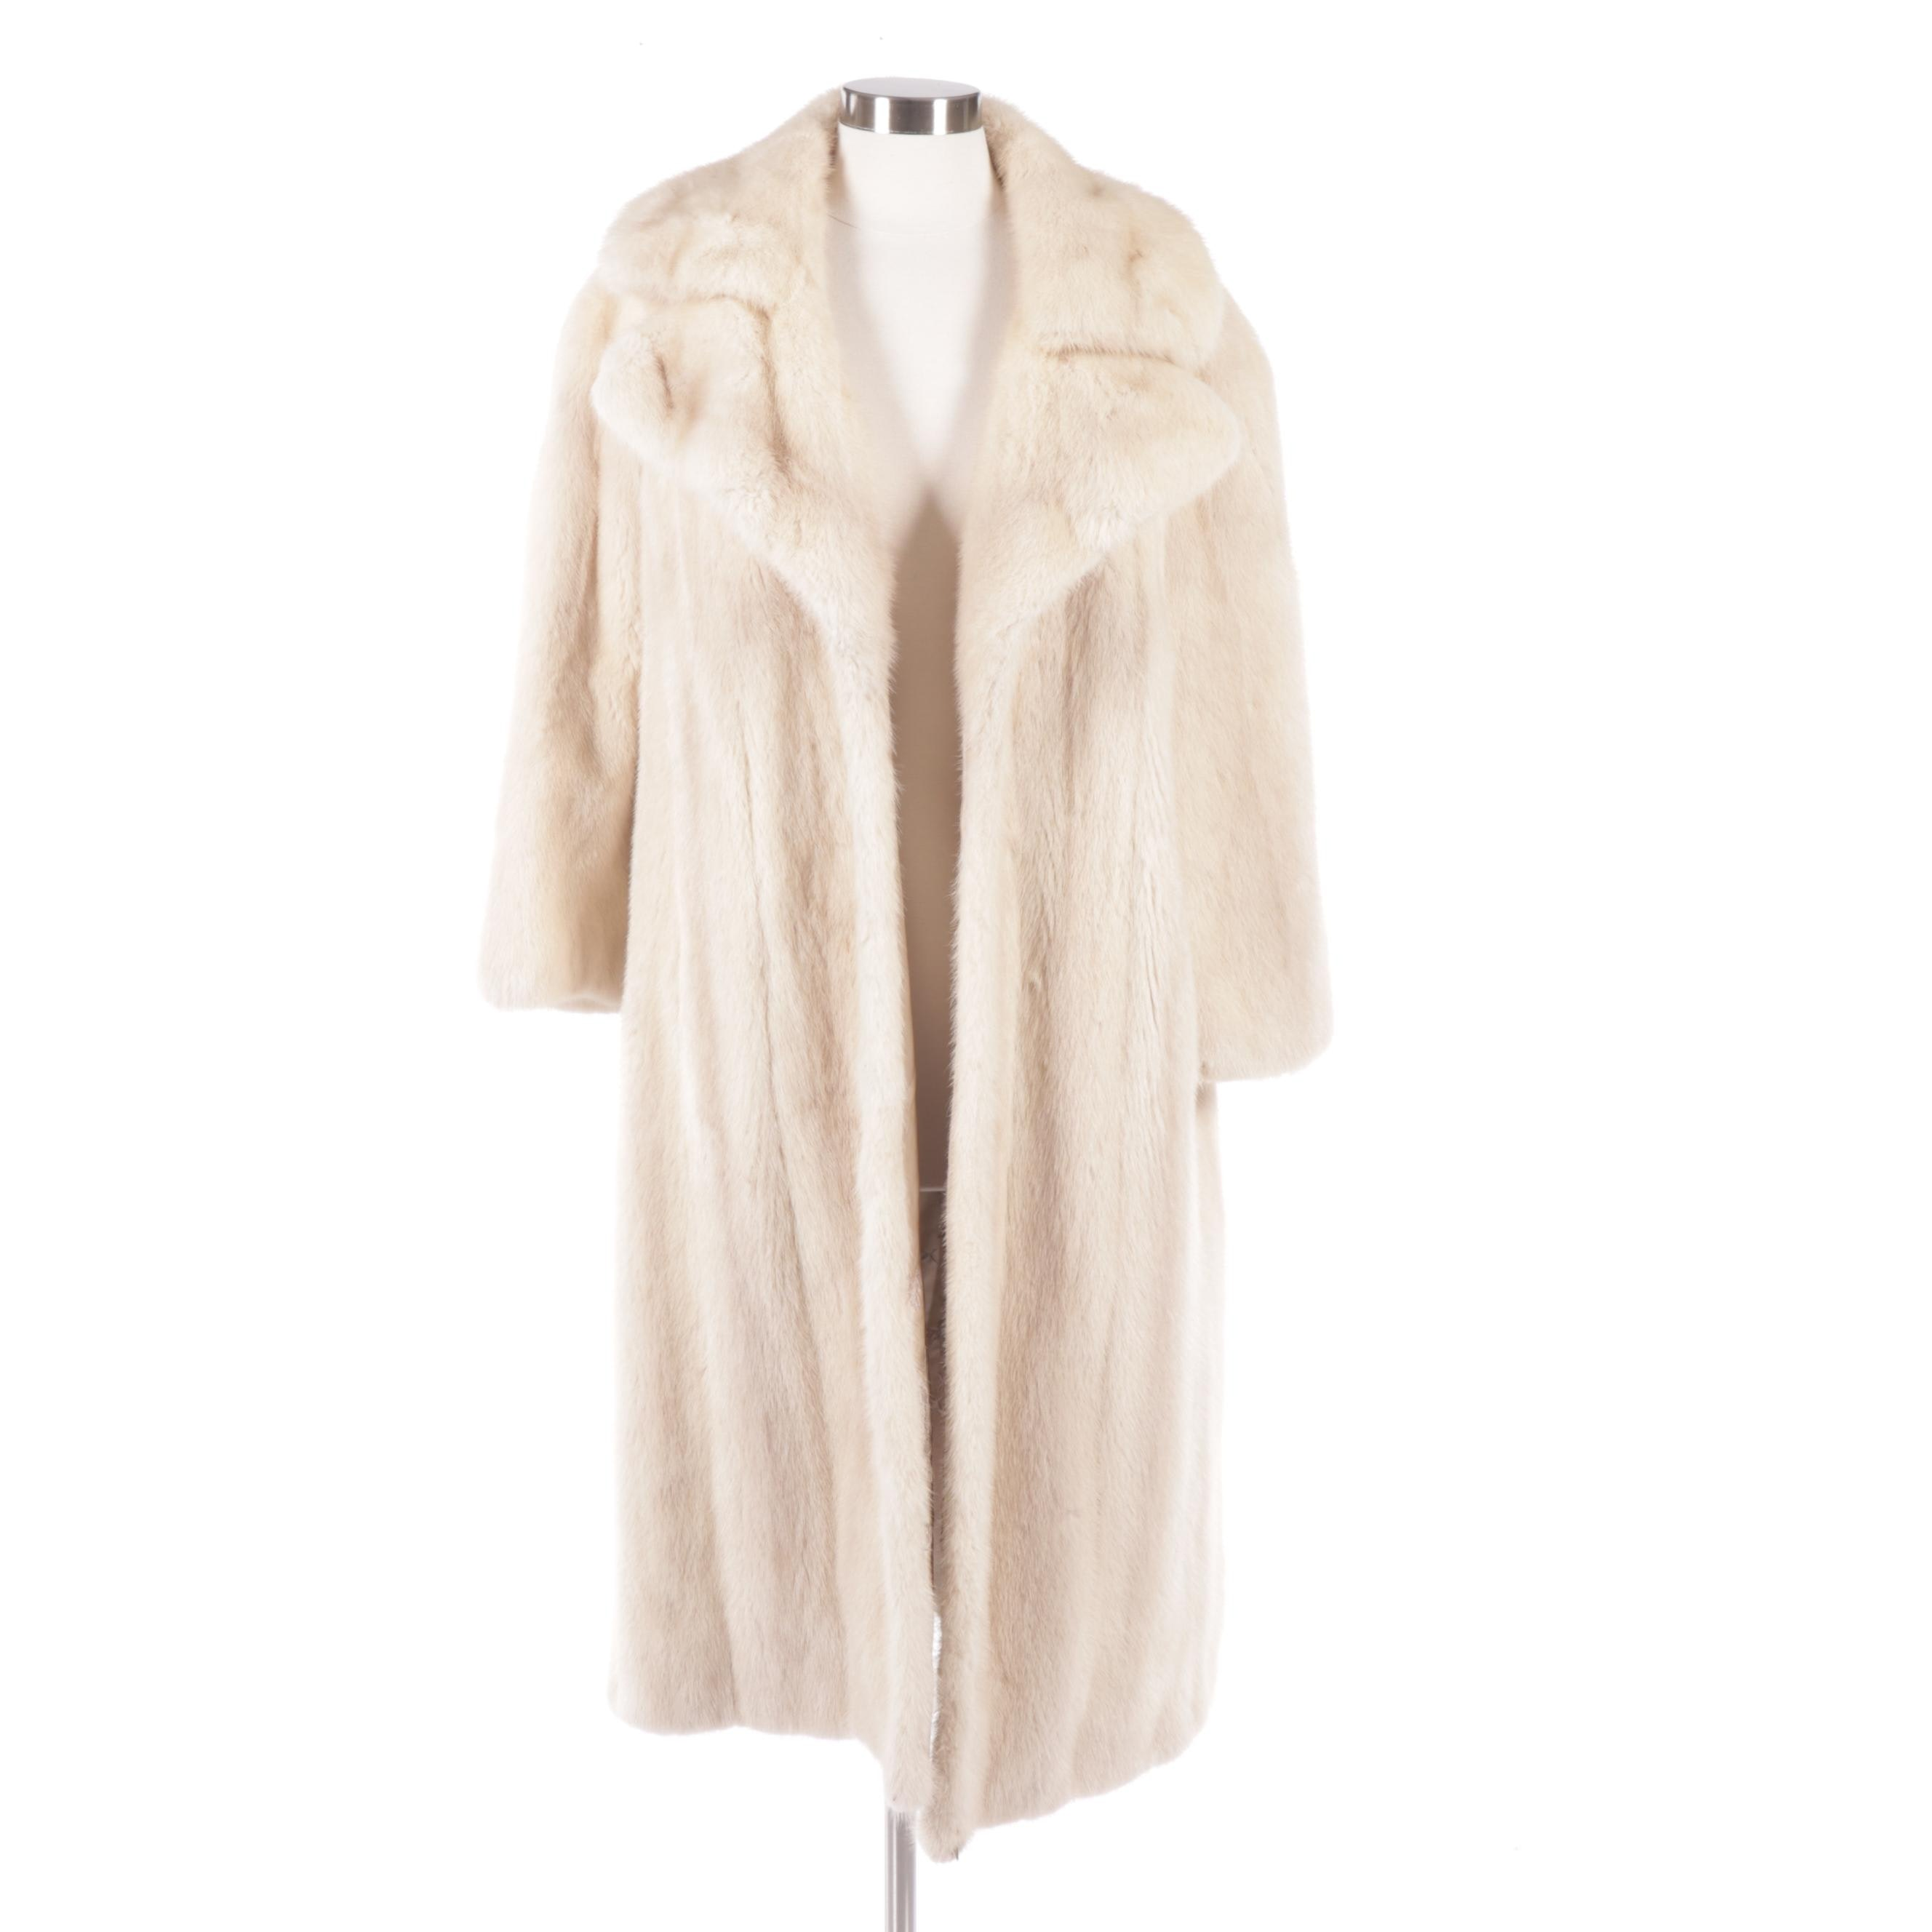 Women's Mink Fur Coat with Wide Notched Lapel and Embroidered Lining, Vintage